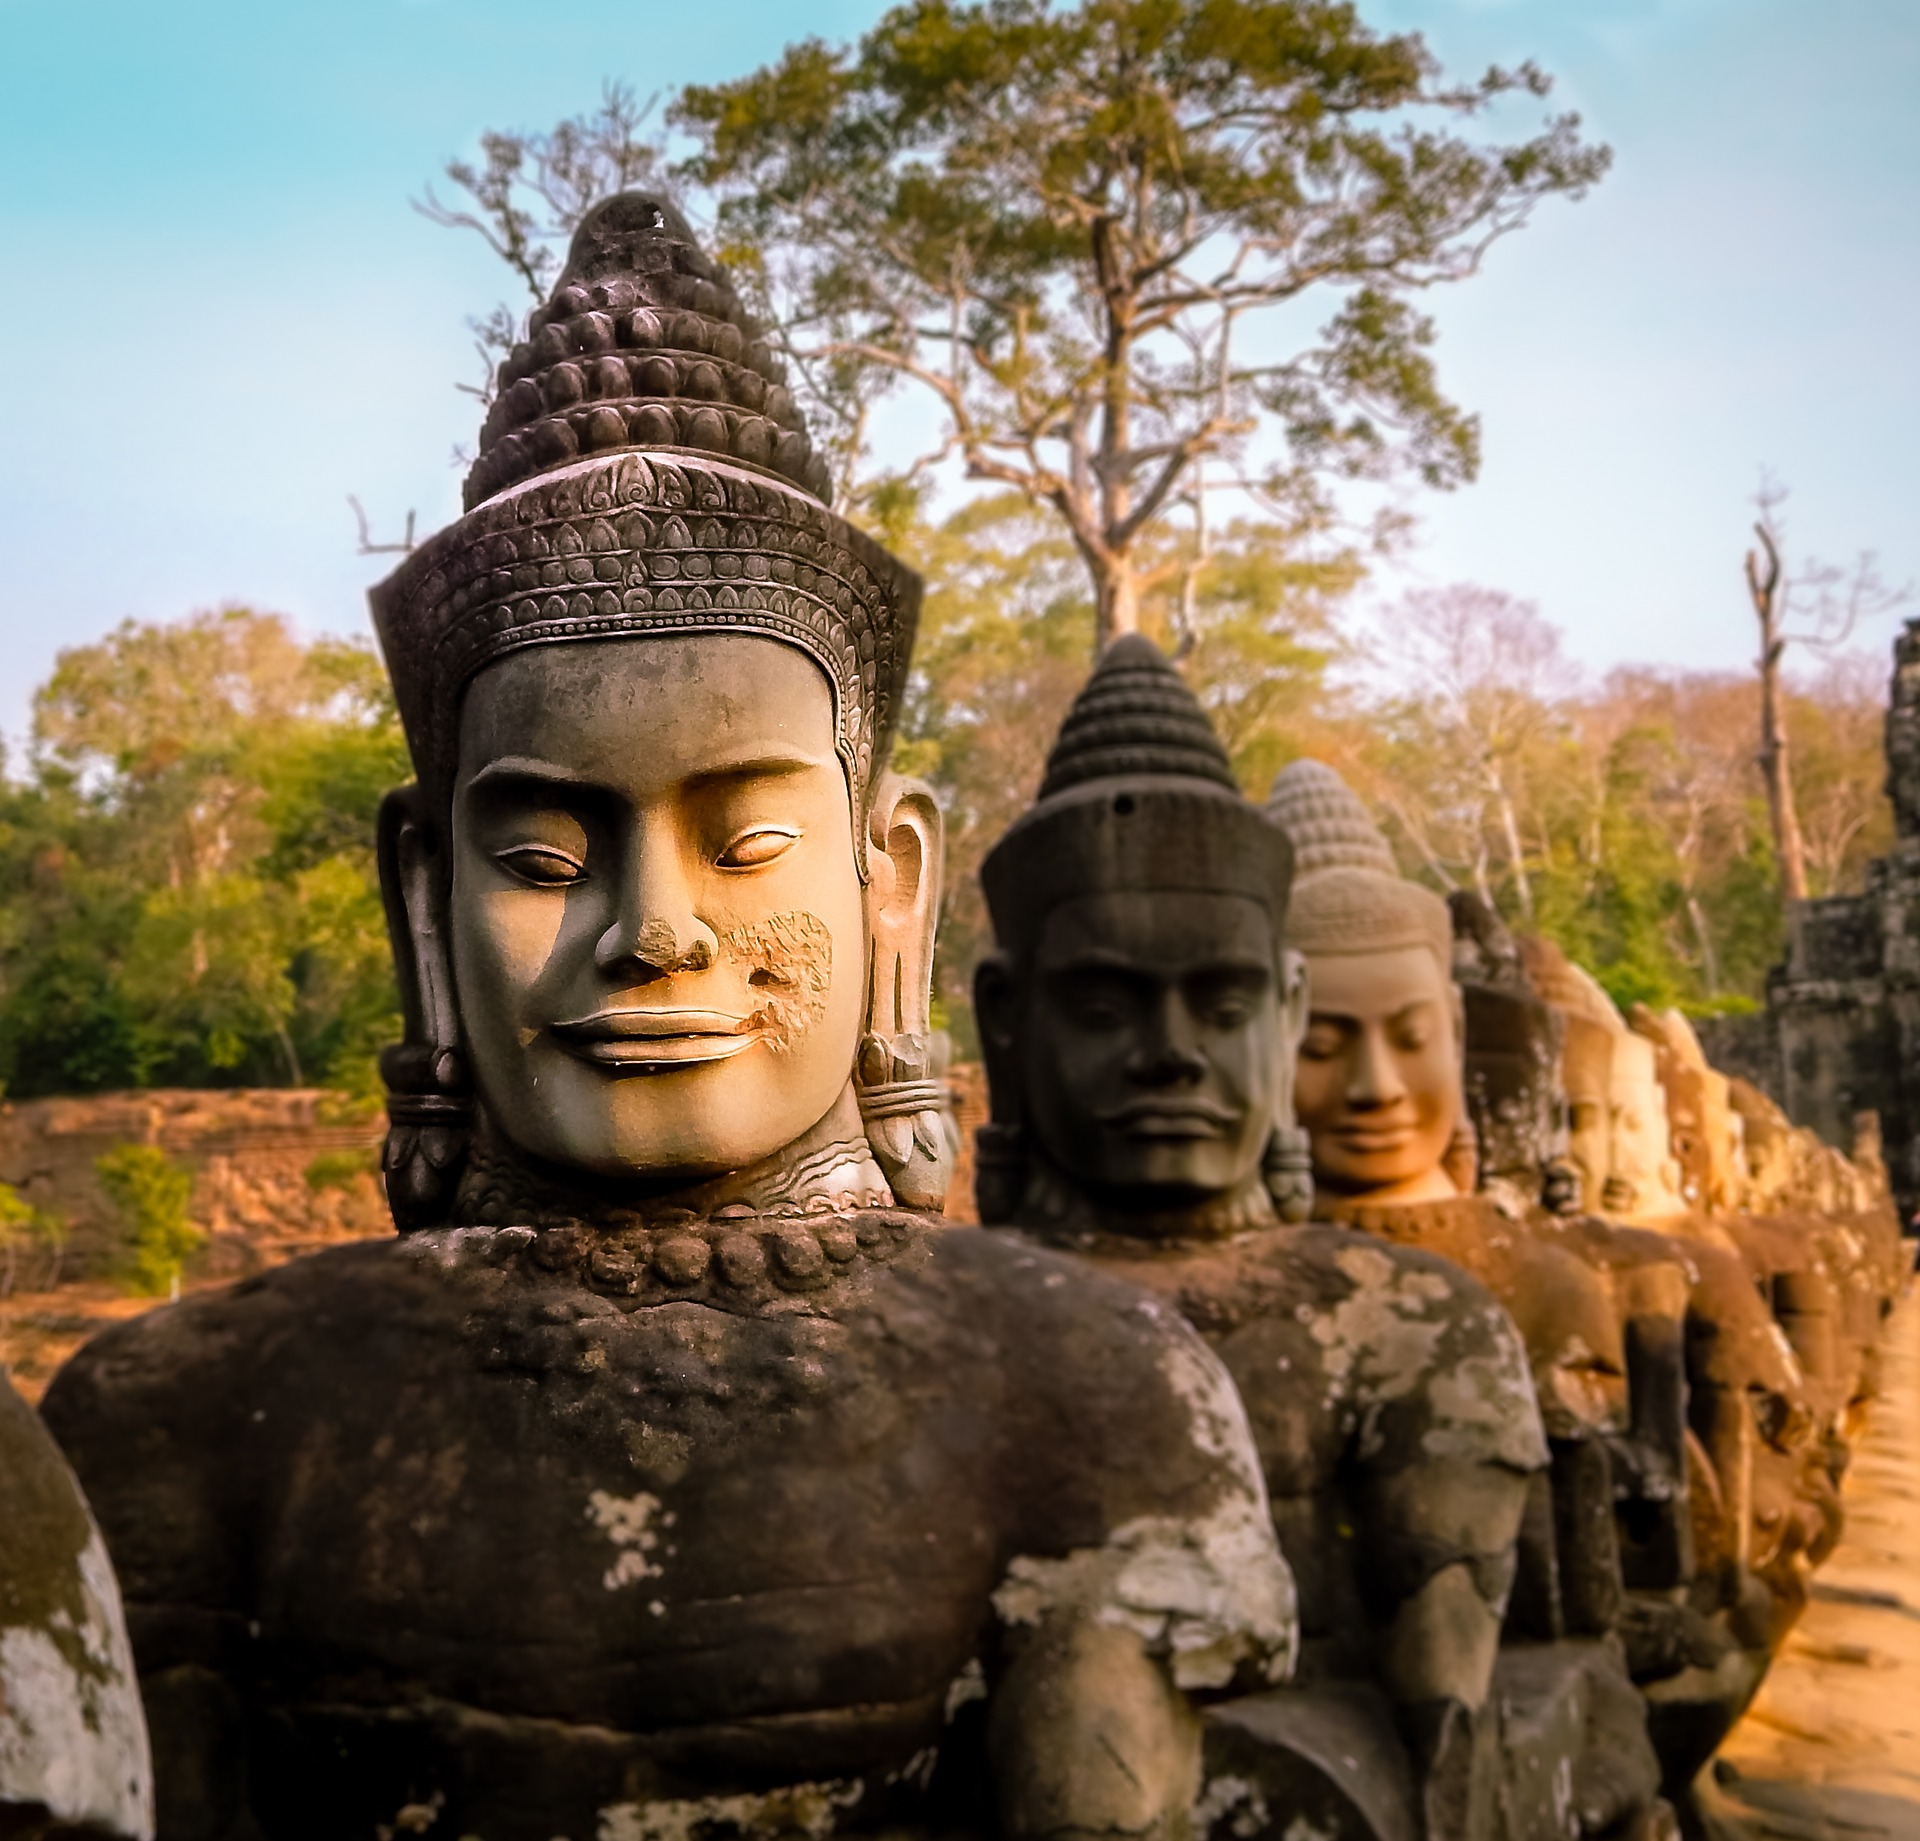 The statues at Angkor Thom, part of the tips for your trip to Cambodia.